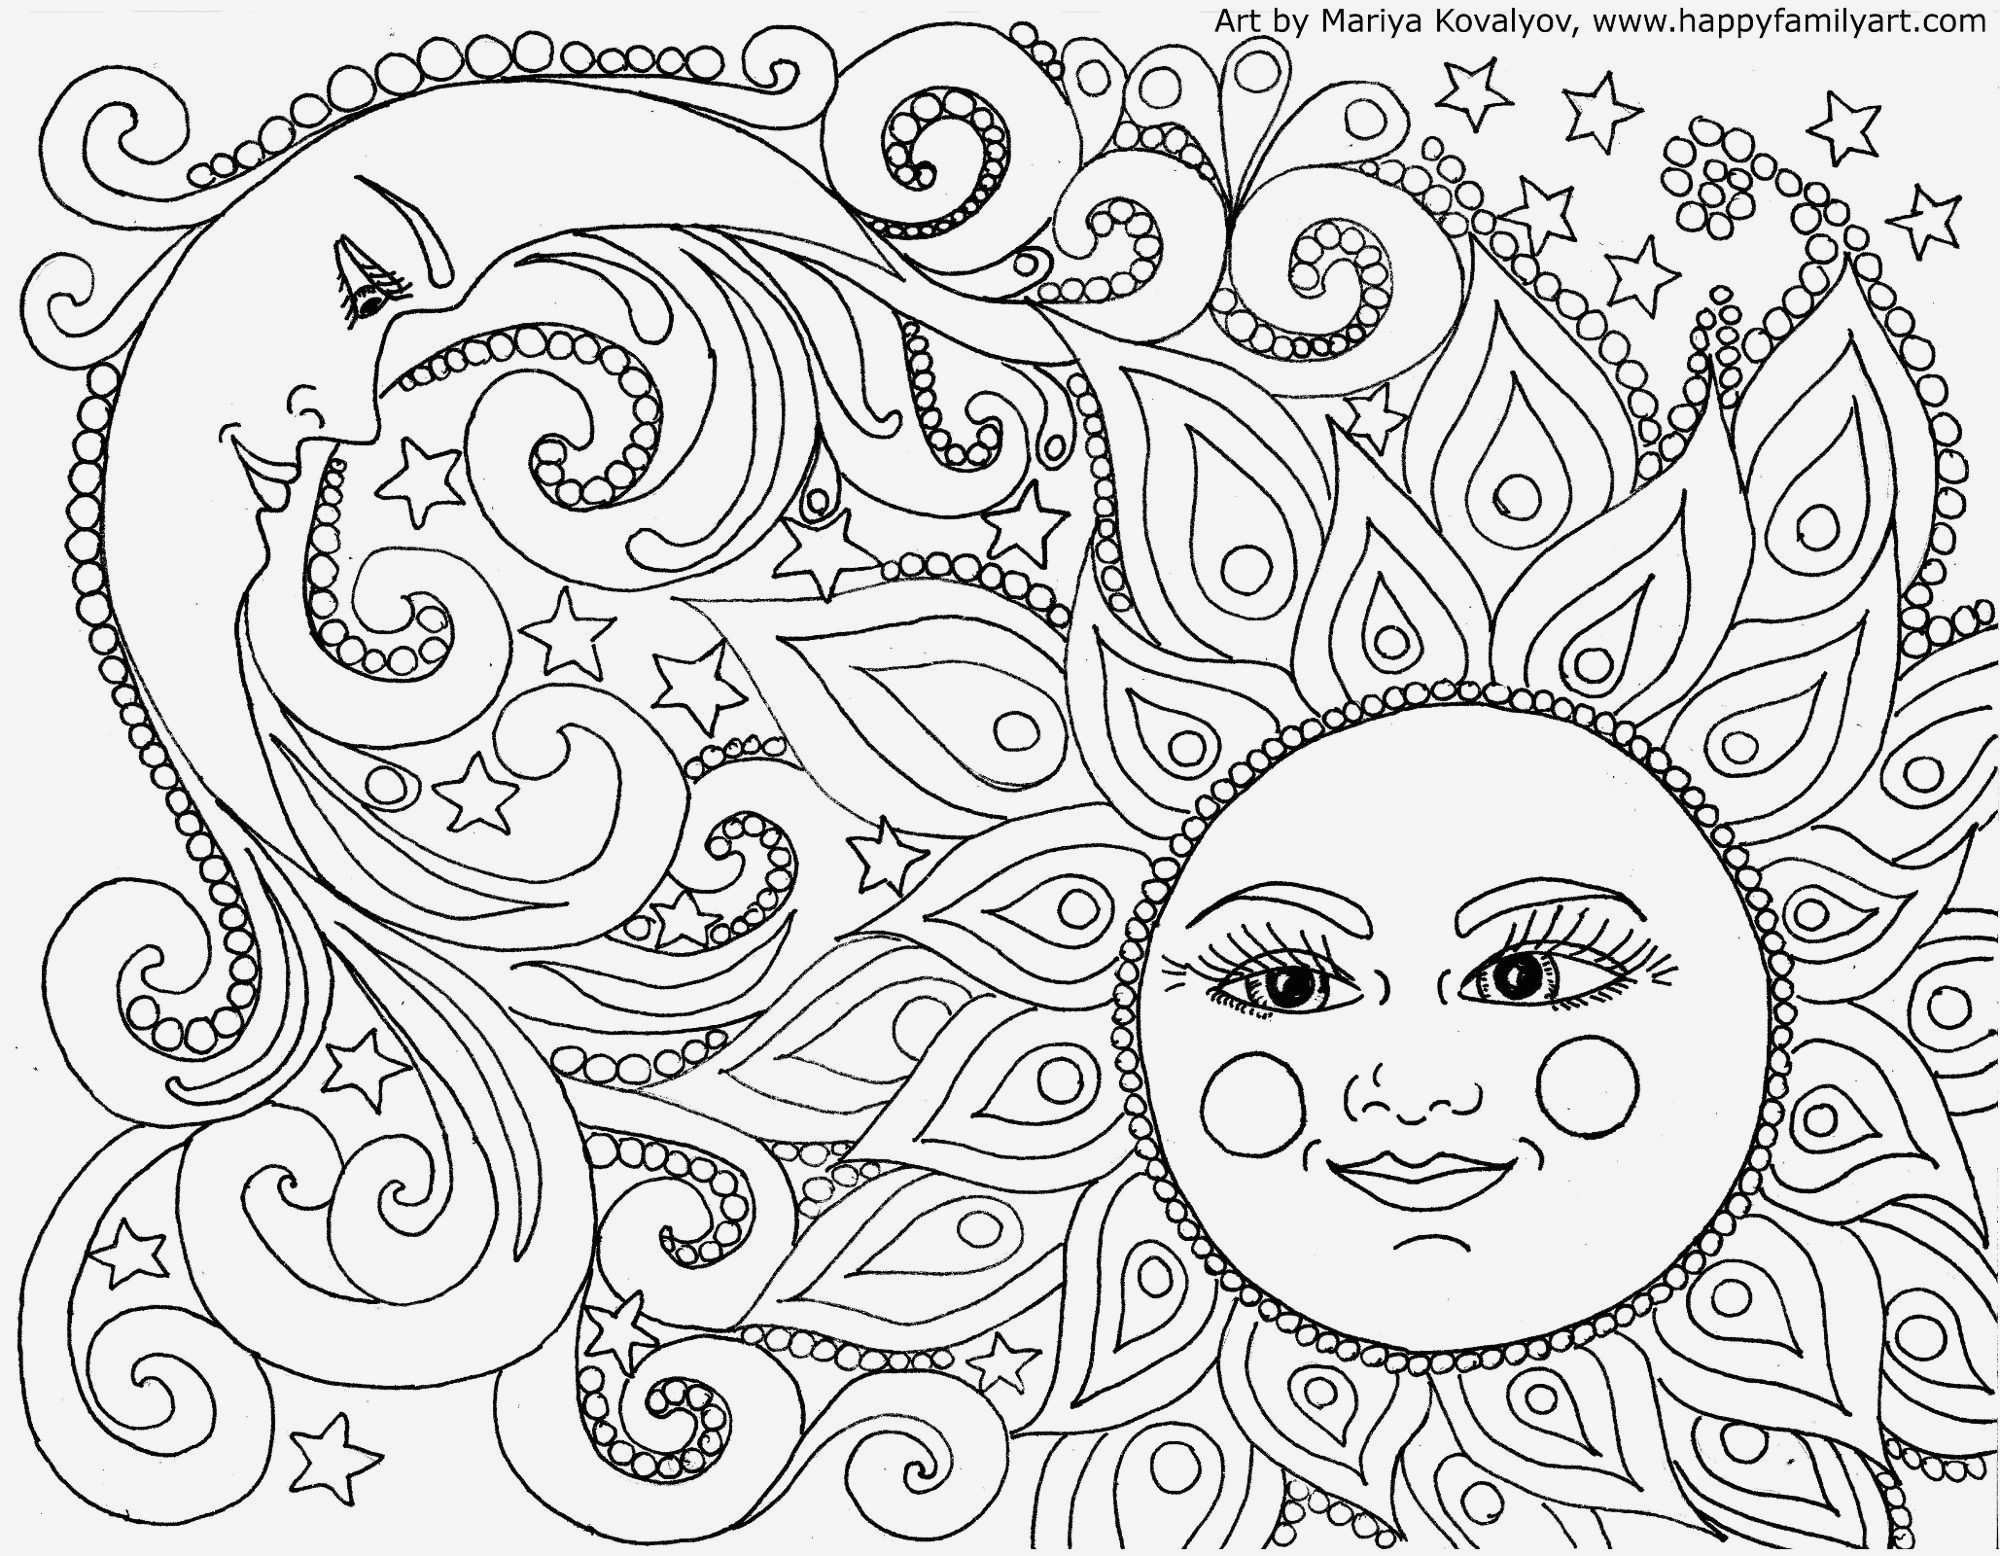 Coloring Ideas : Easy Printable Coloringes Beautiful Grown Up To - Www Free Printable Coloring Pages